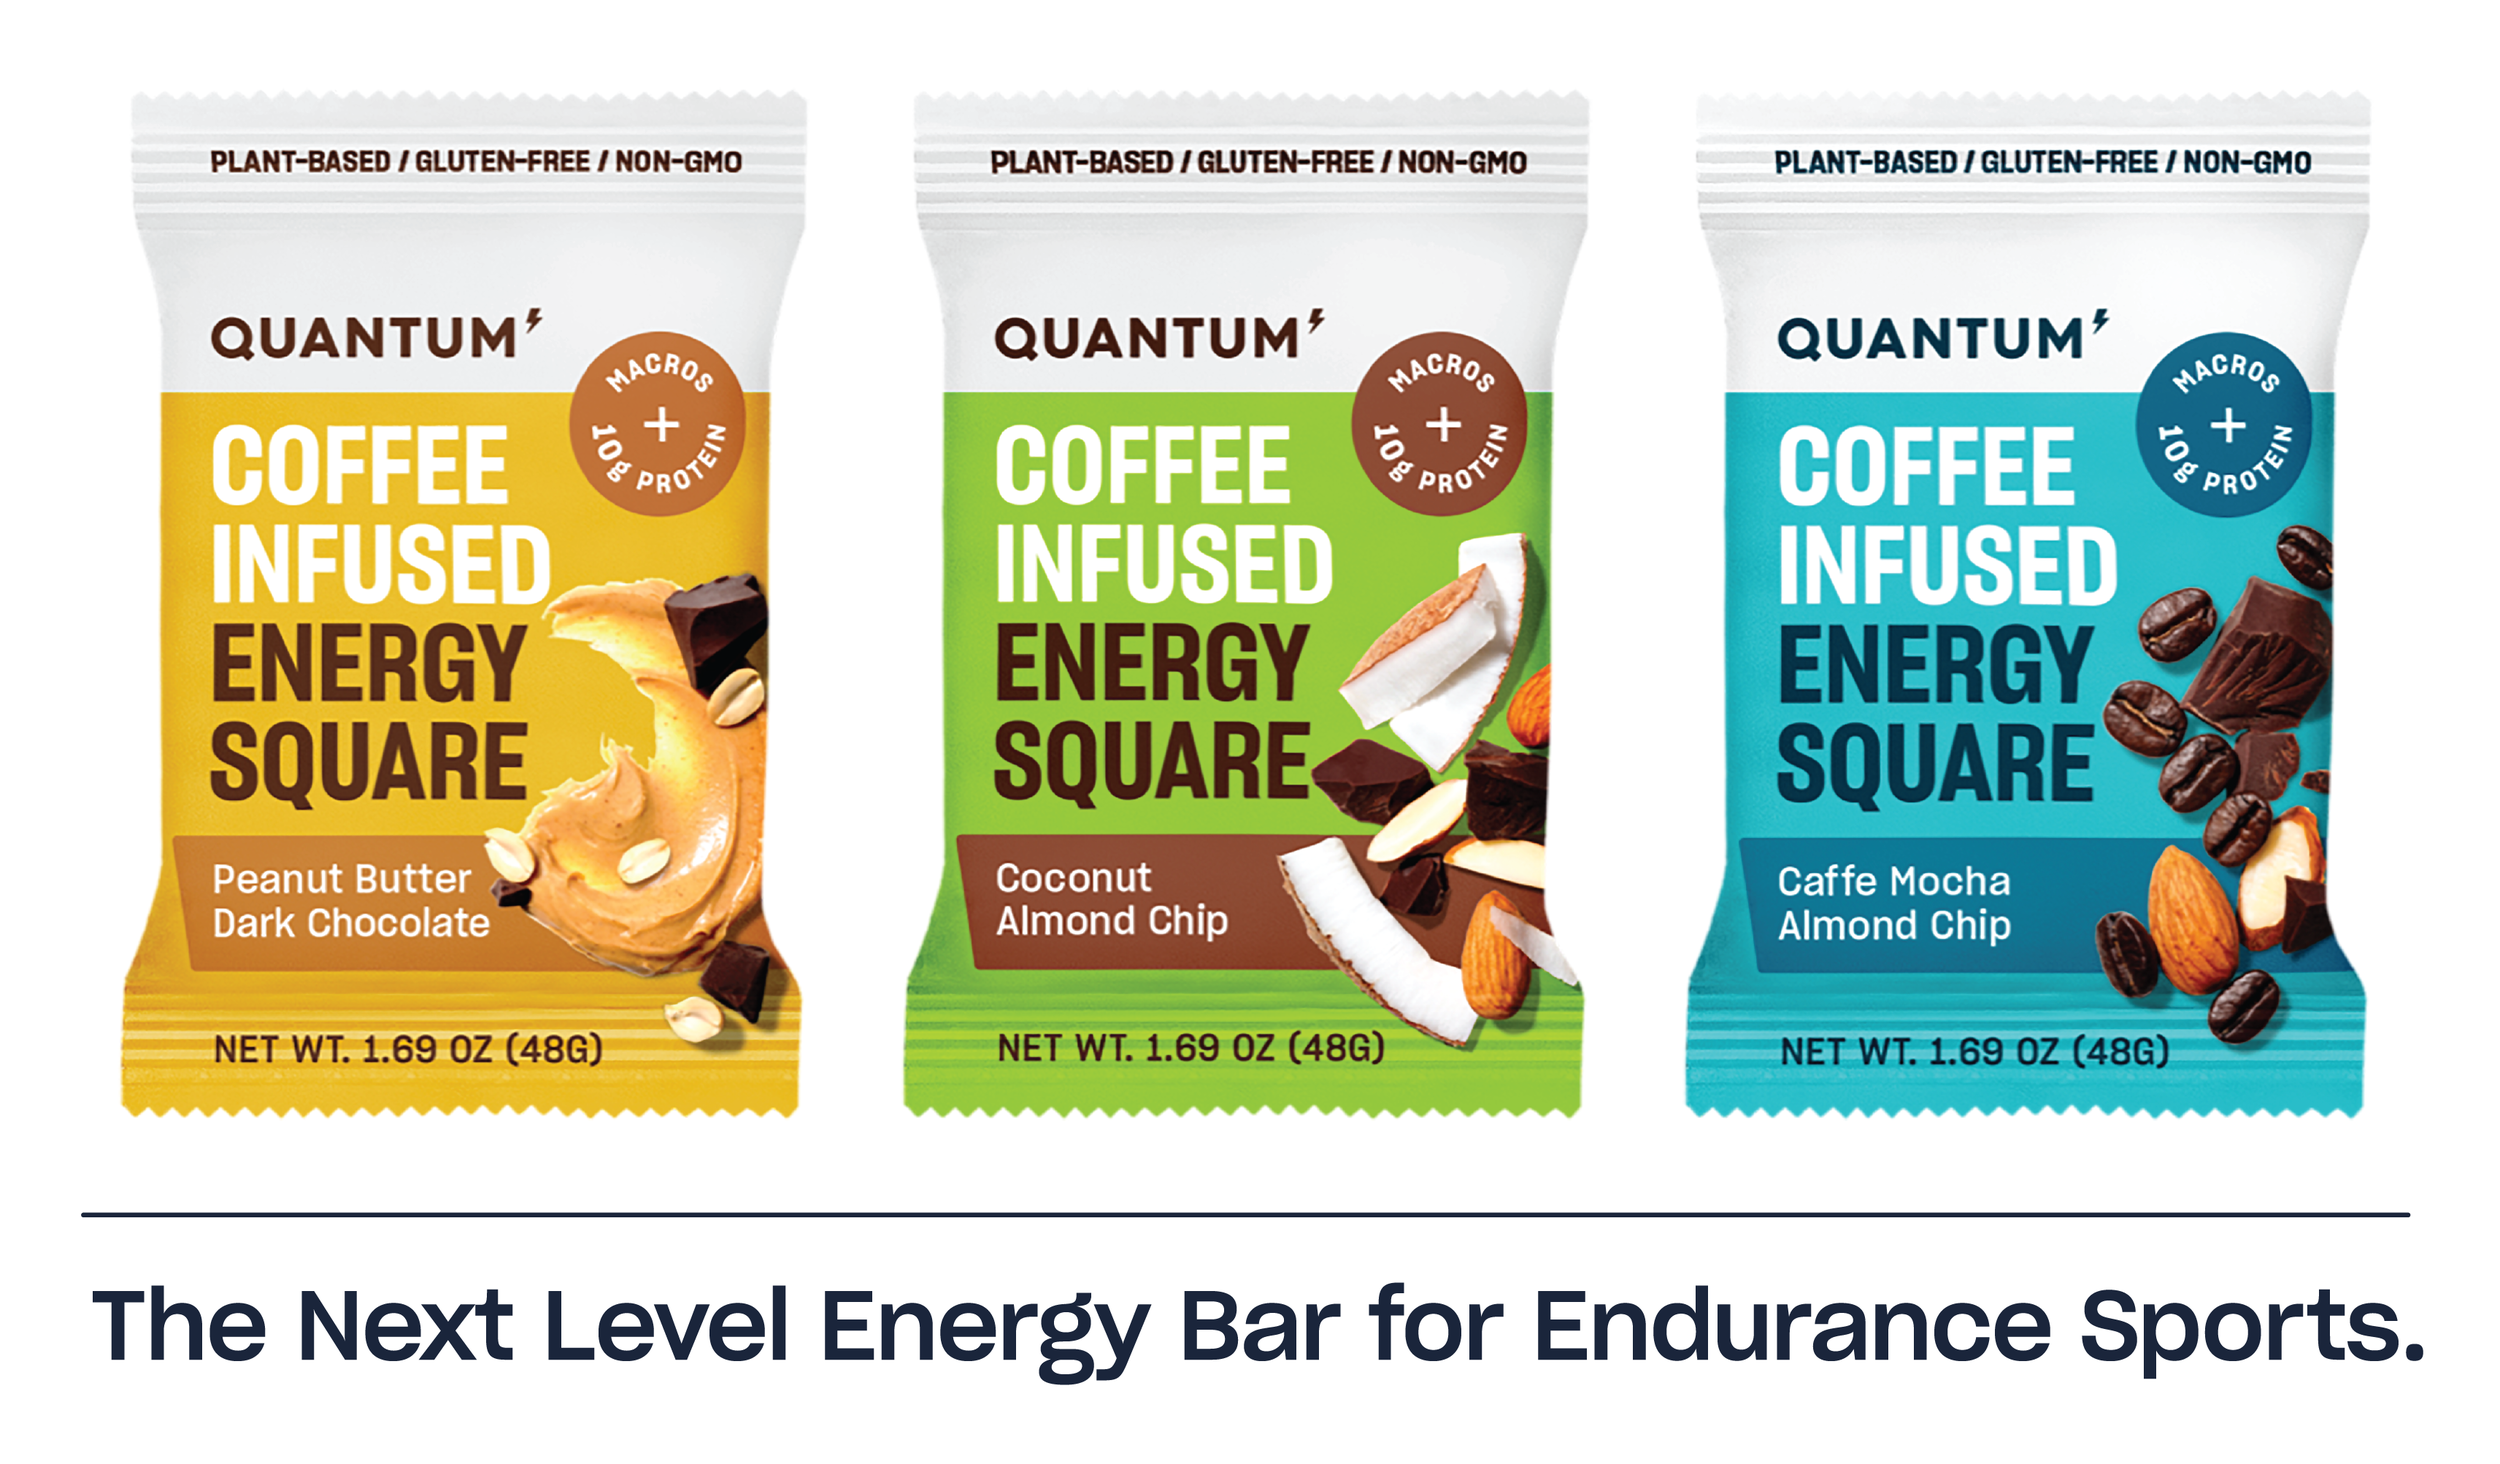 NEW-Quantum-3-Bar-Image-with-Text-for-RoadRunner-1650px-wide.png